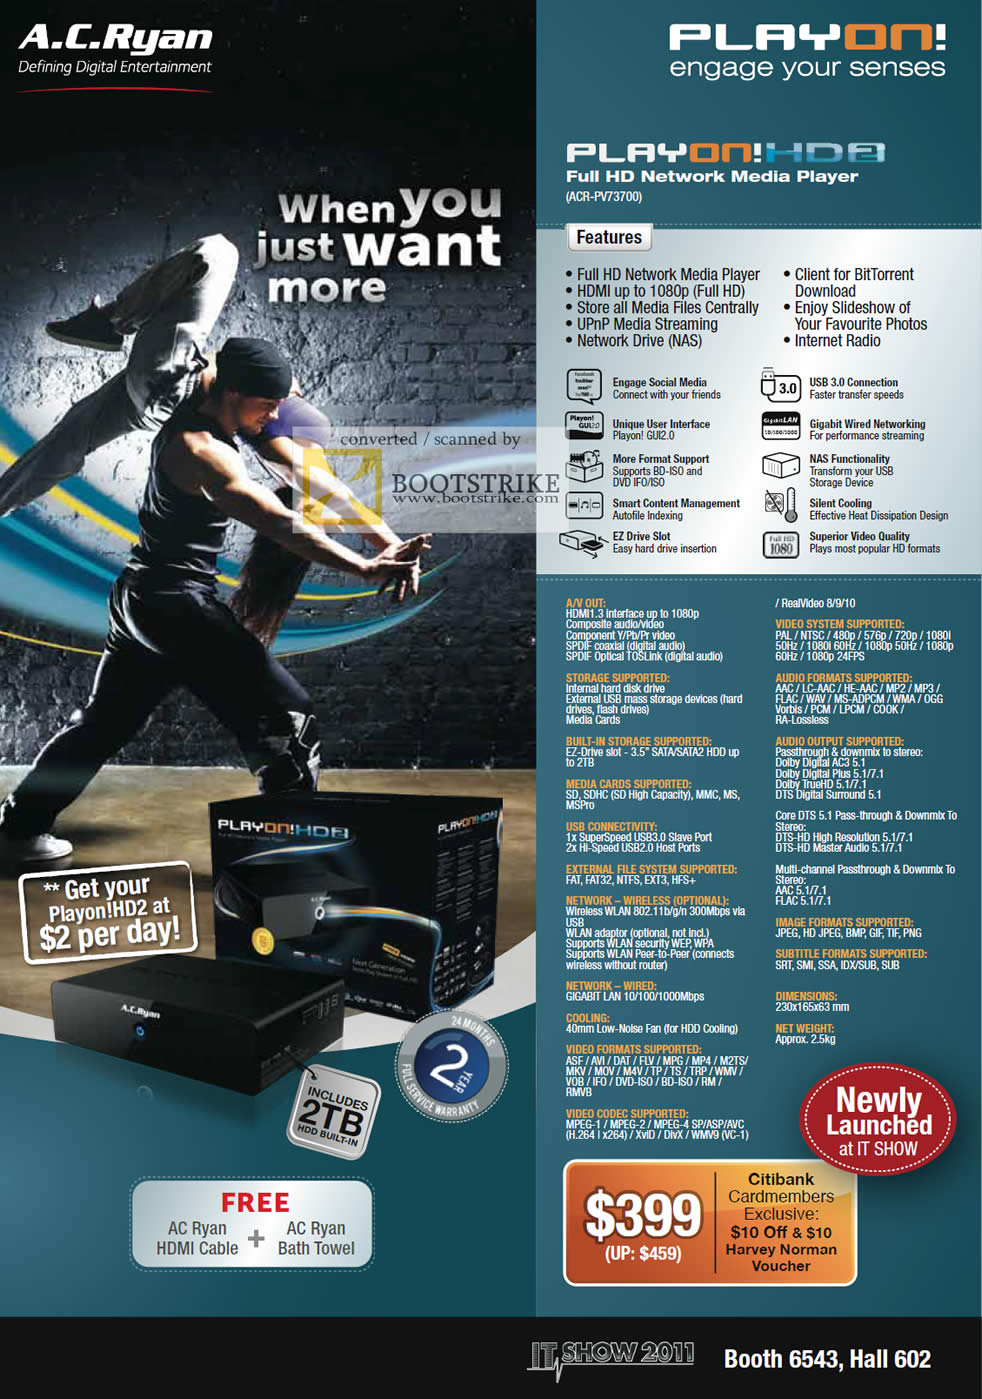 IT Show 2011 price list image brochure of AC Ryan Play On HD2 Network Media Player ACR-PV73700